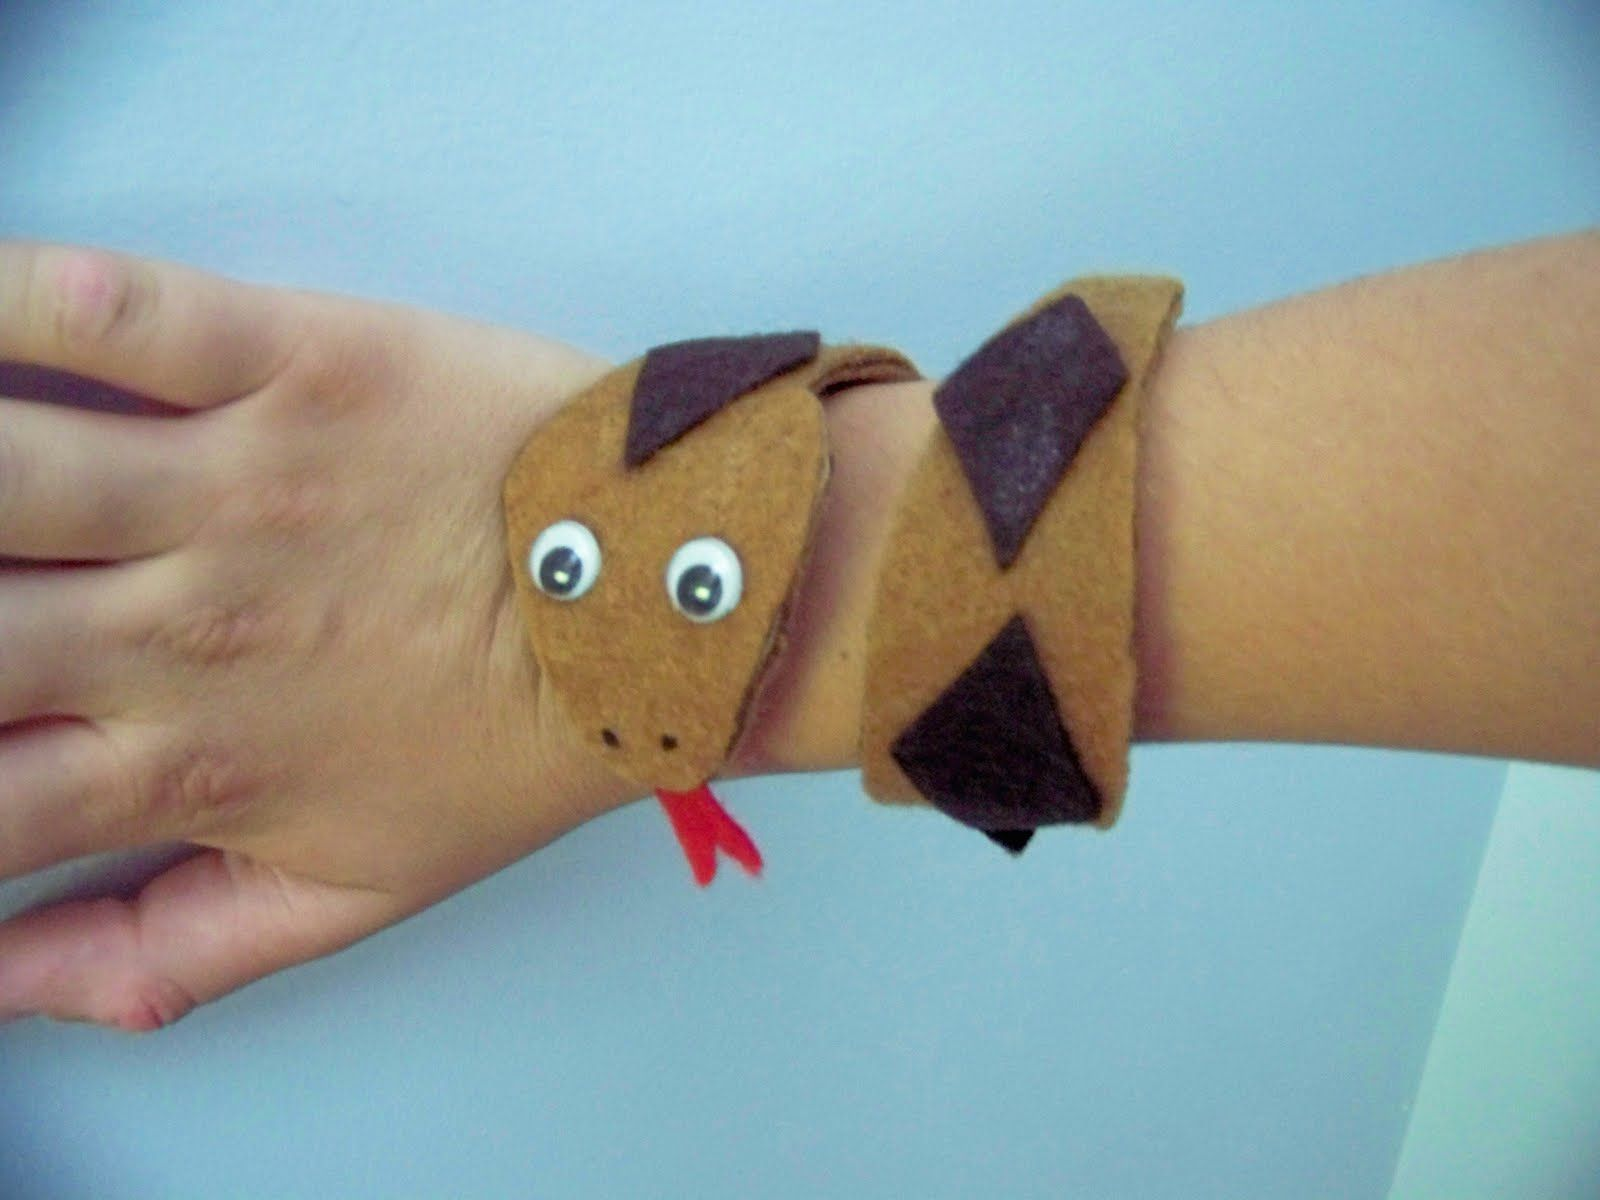 Snack bracelet craft from TP roll and felt includes template and